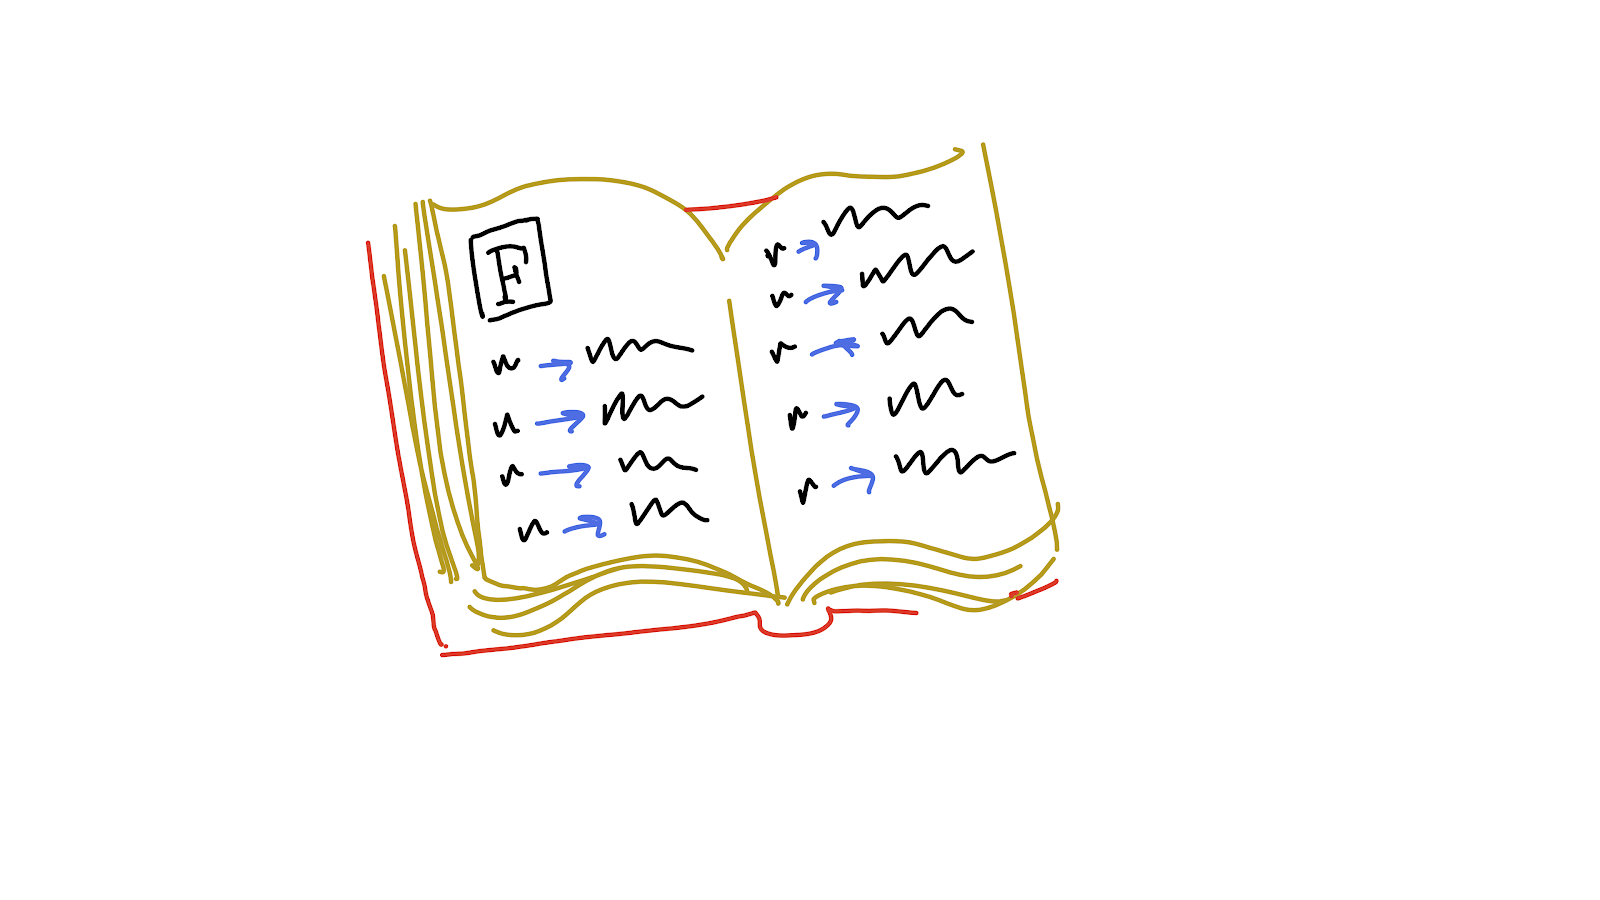 A page in a dictionary, showing keys (words) mapped to values (definitions).